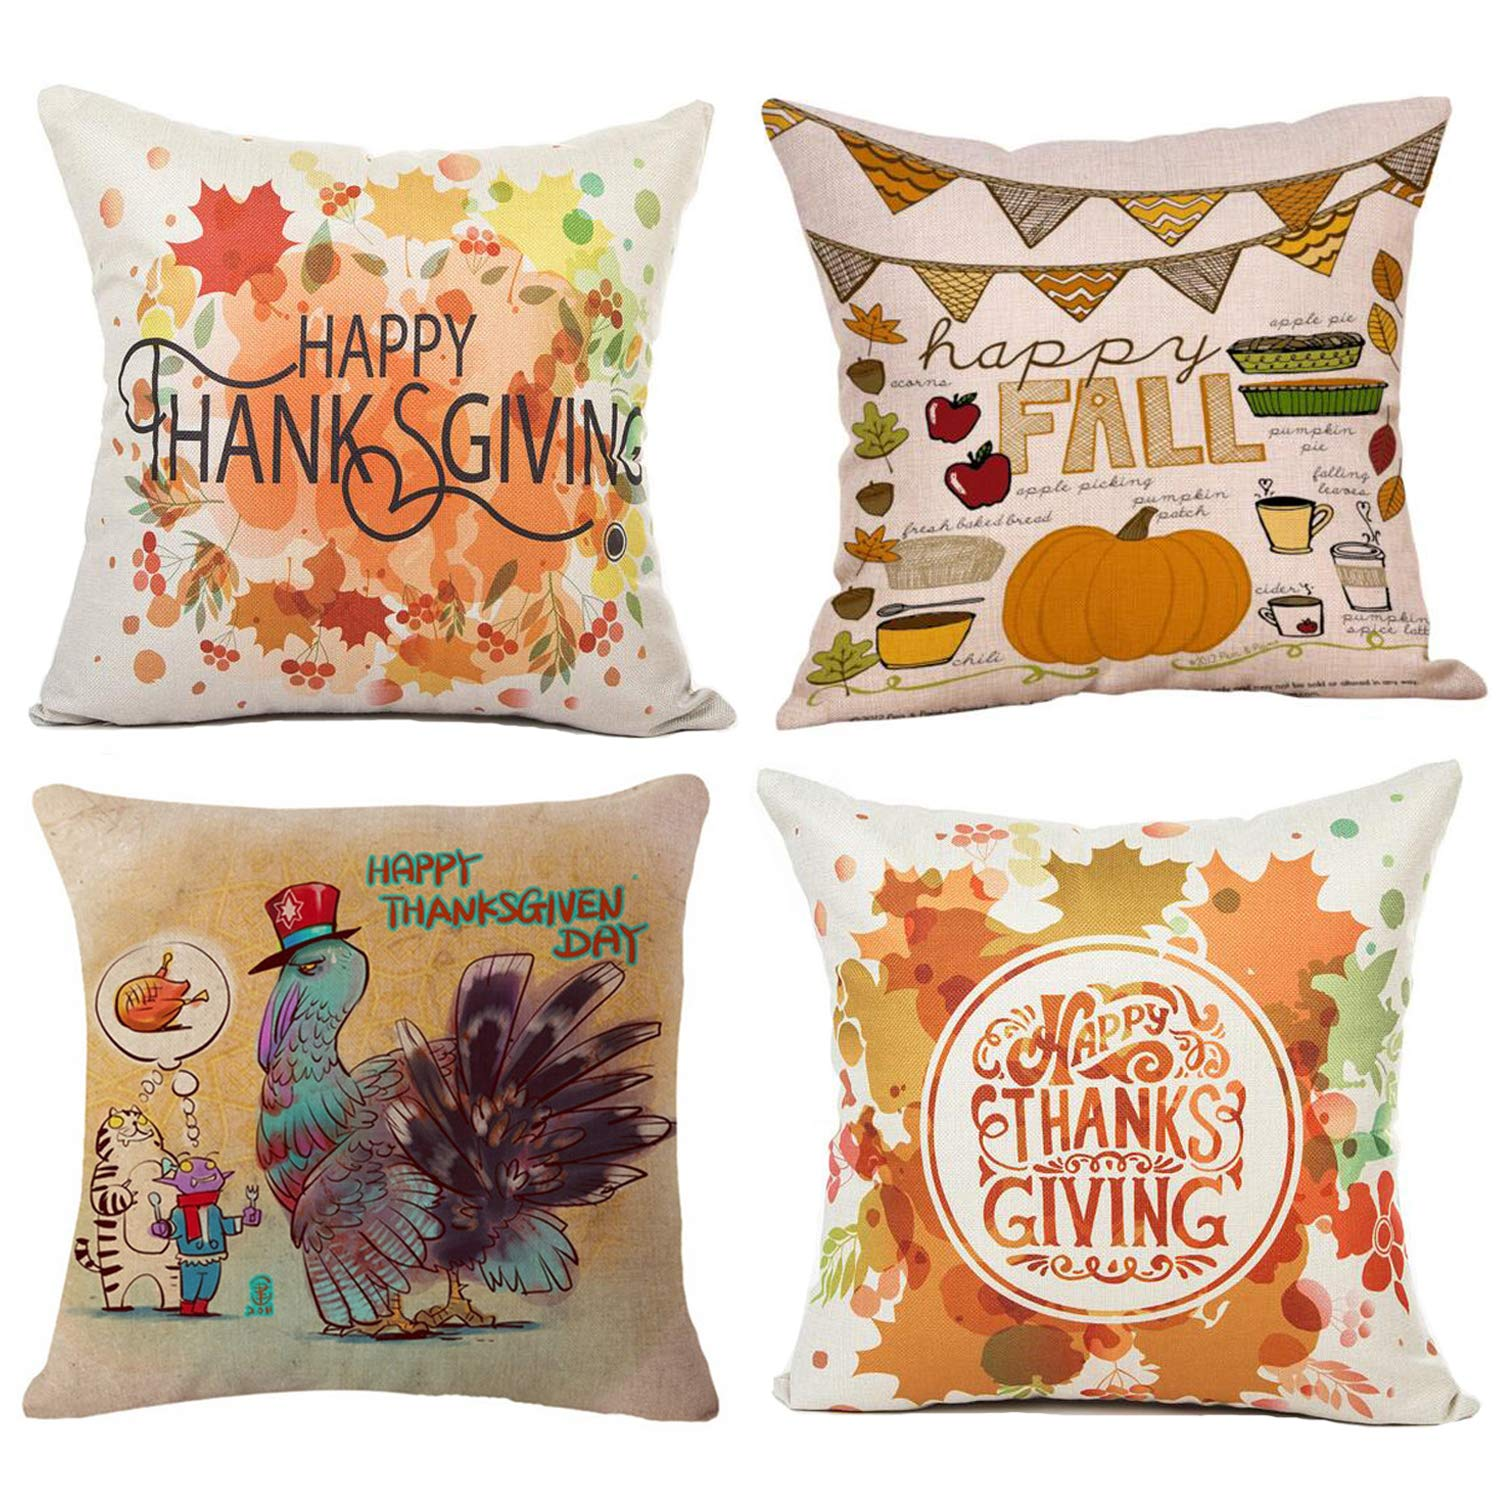 Wonder4 Happy Thanksgiving Day Fall Decor Pumpkin Decorative Pillow Covers Cotton Linen Home Decor Design Thanksgiving Happy Turkey Day Farmer Harvest Pumpkins Autumn Leaves 18x18 Inch Set of 4